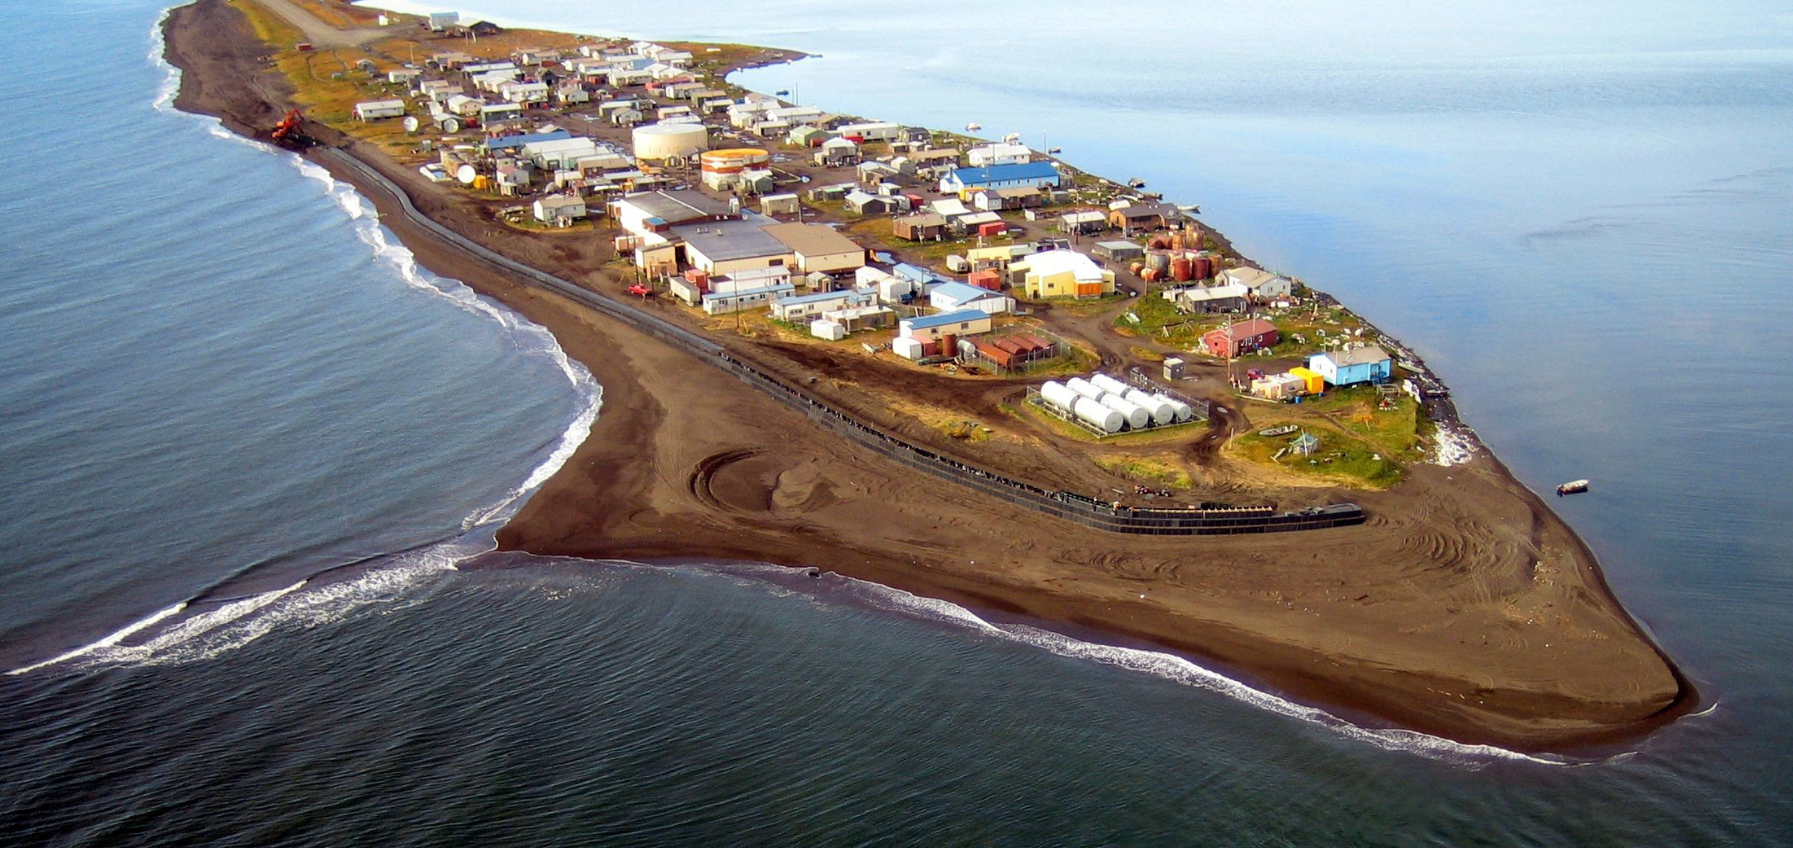 The village of Kivalina, Alaska. Will this be one of the stops on President Barack Obama's upcoming Arctic trip? (Northwest Arctic Borough via The Anchorage Daily News/AP)